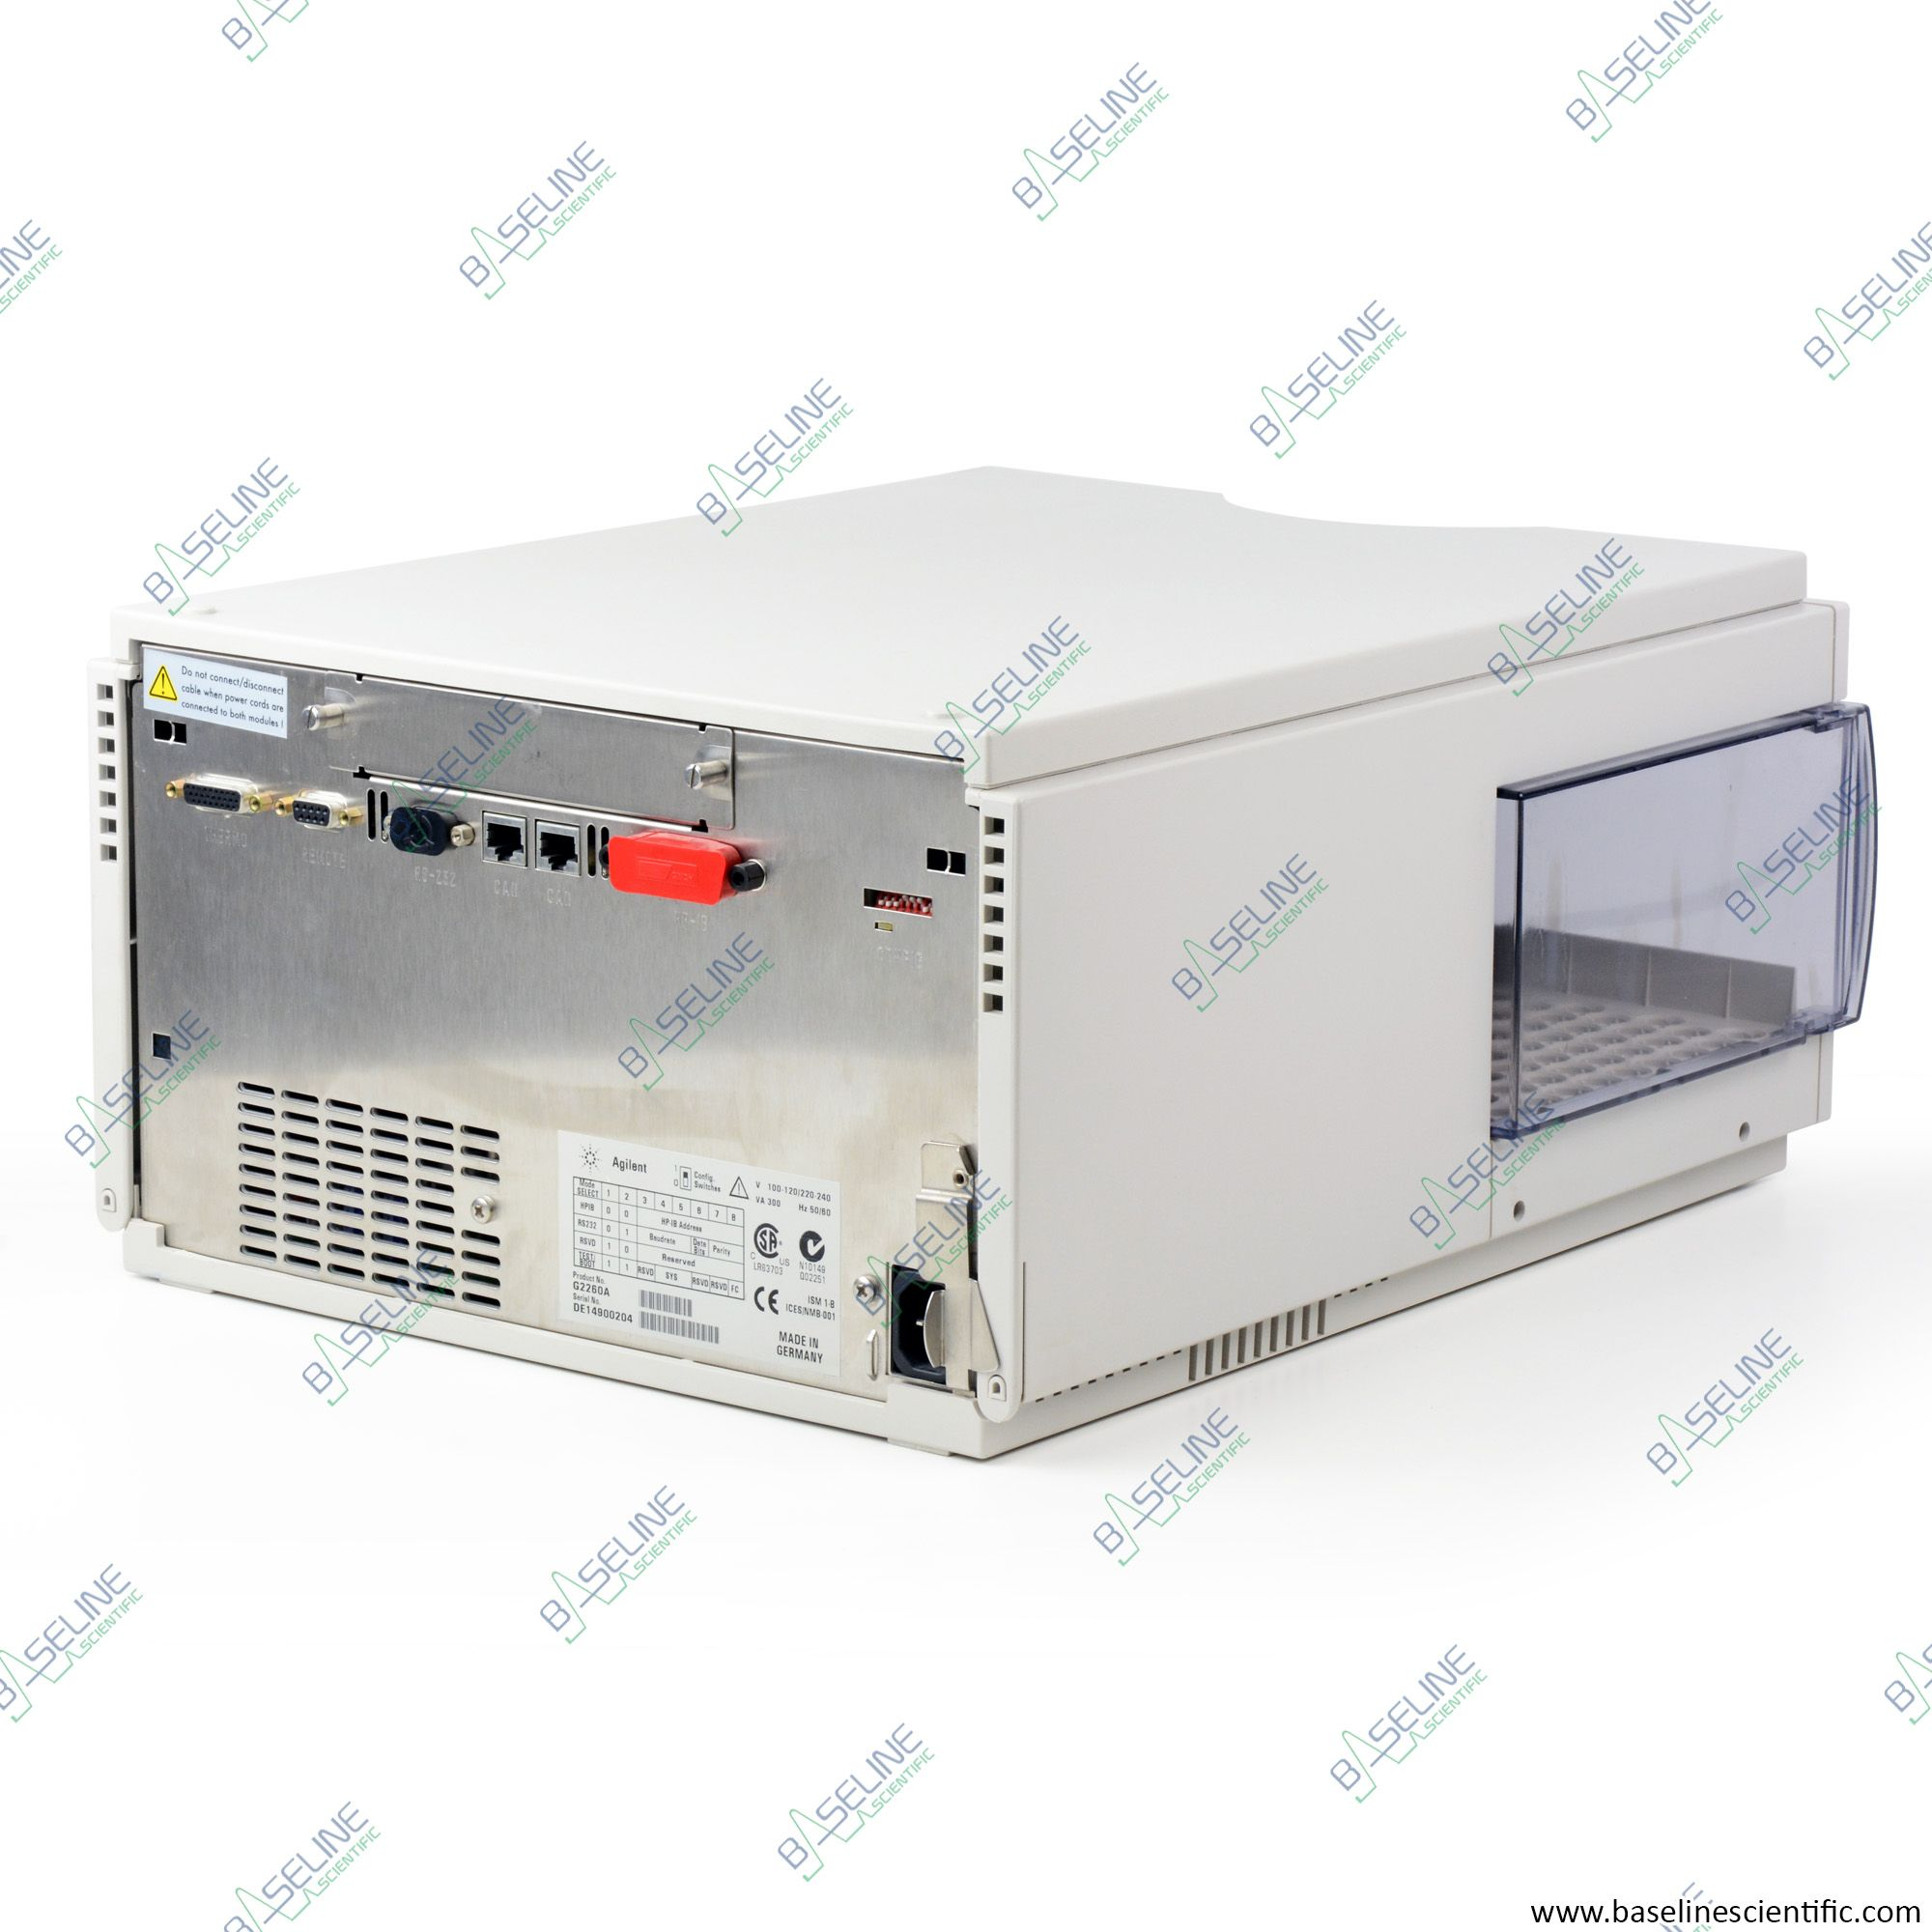 Refurbished Agilent HP 1100 G2260A Preparative Autosampler with ONE YEAR WARRANTY